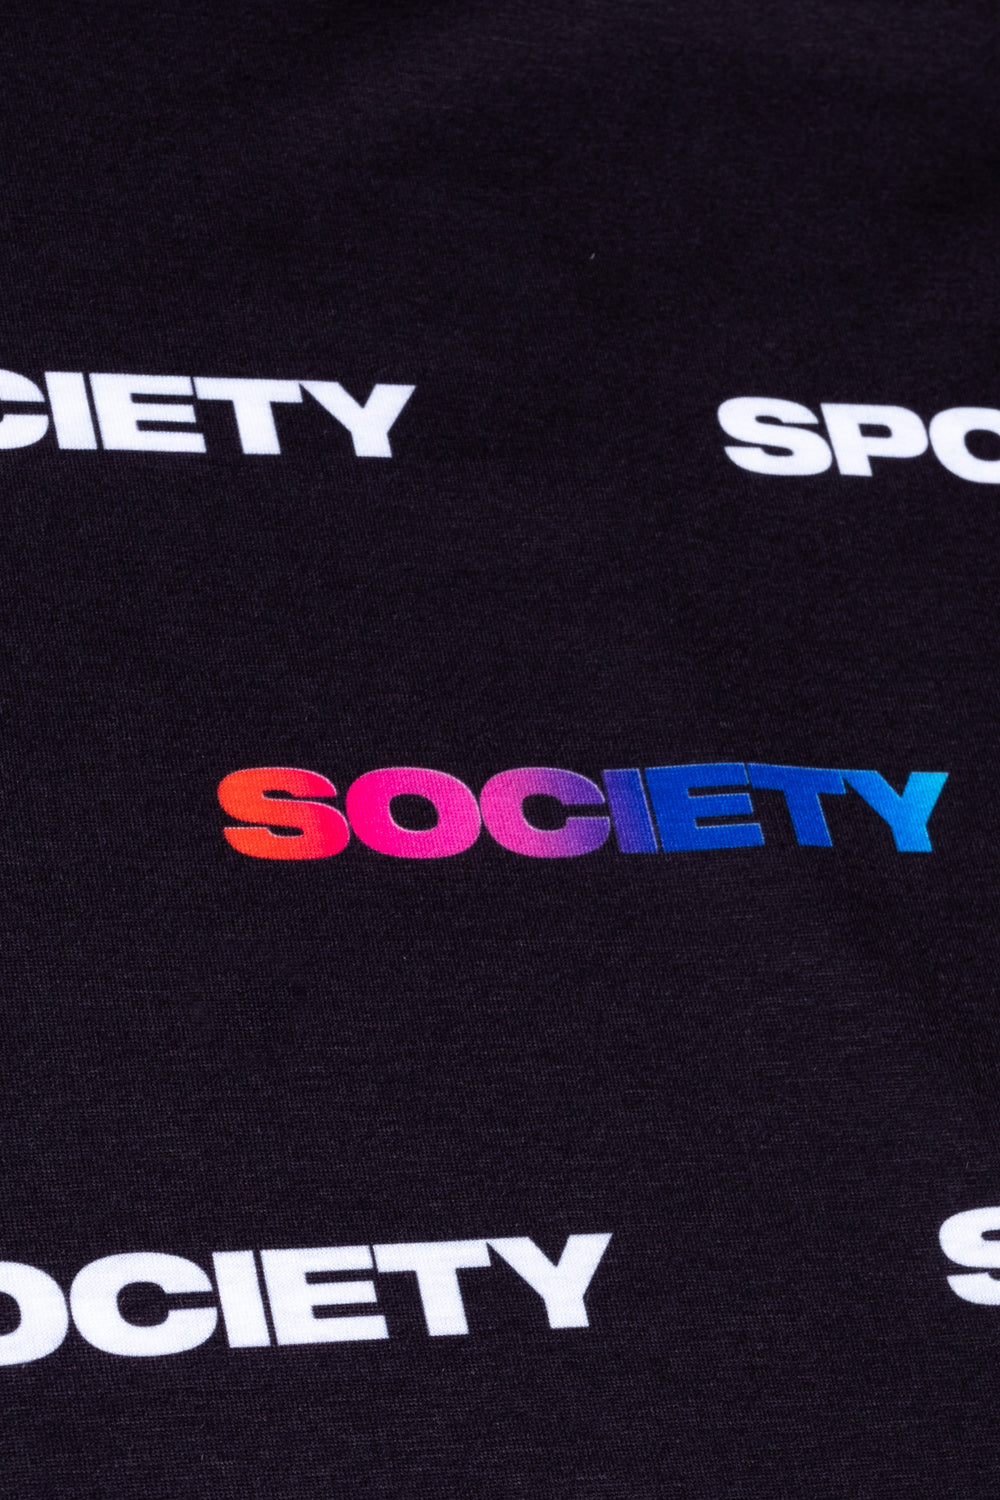 SOCIETY SPORT RUNNING RAINBOW LOGO MEN'S T-SHIRT